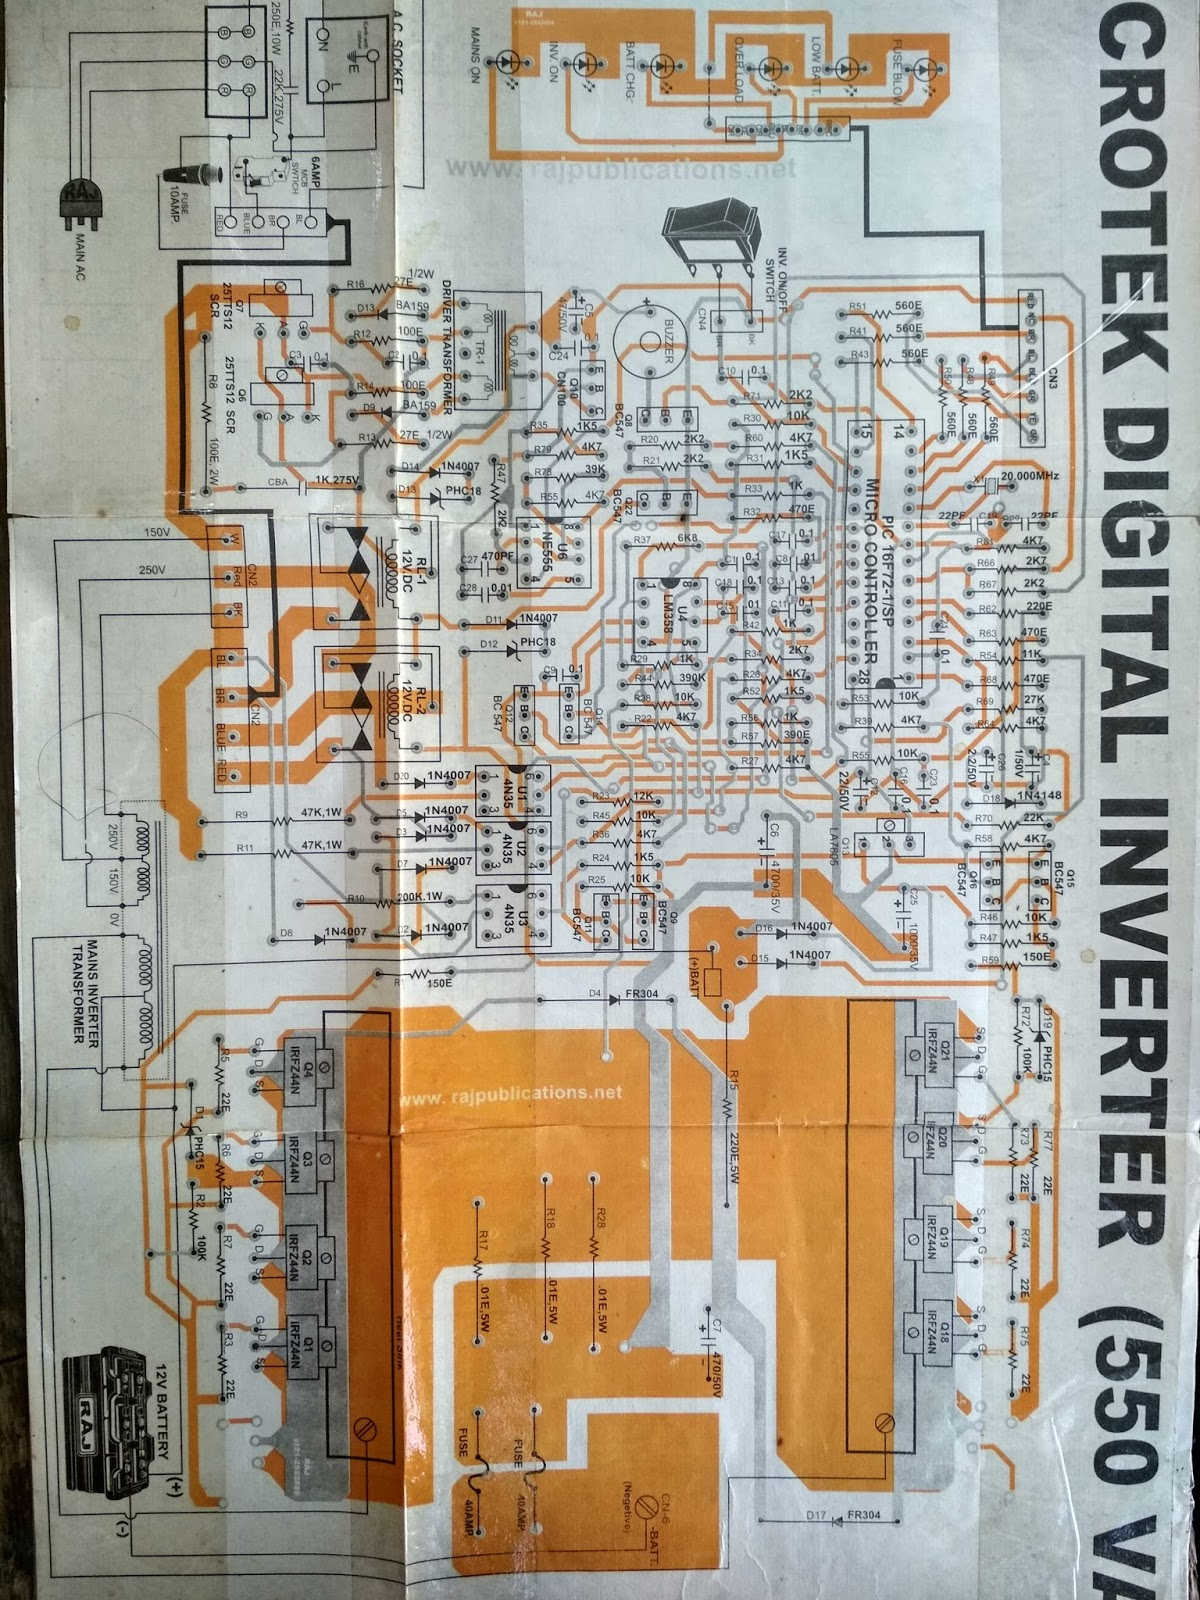 Pure Sinewave Inverter Diagram 11105 Ic China Tv Circuit Diagrams Hd Pdf Paytm 50